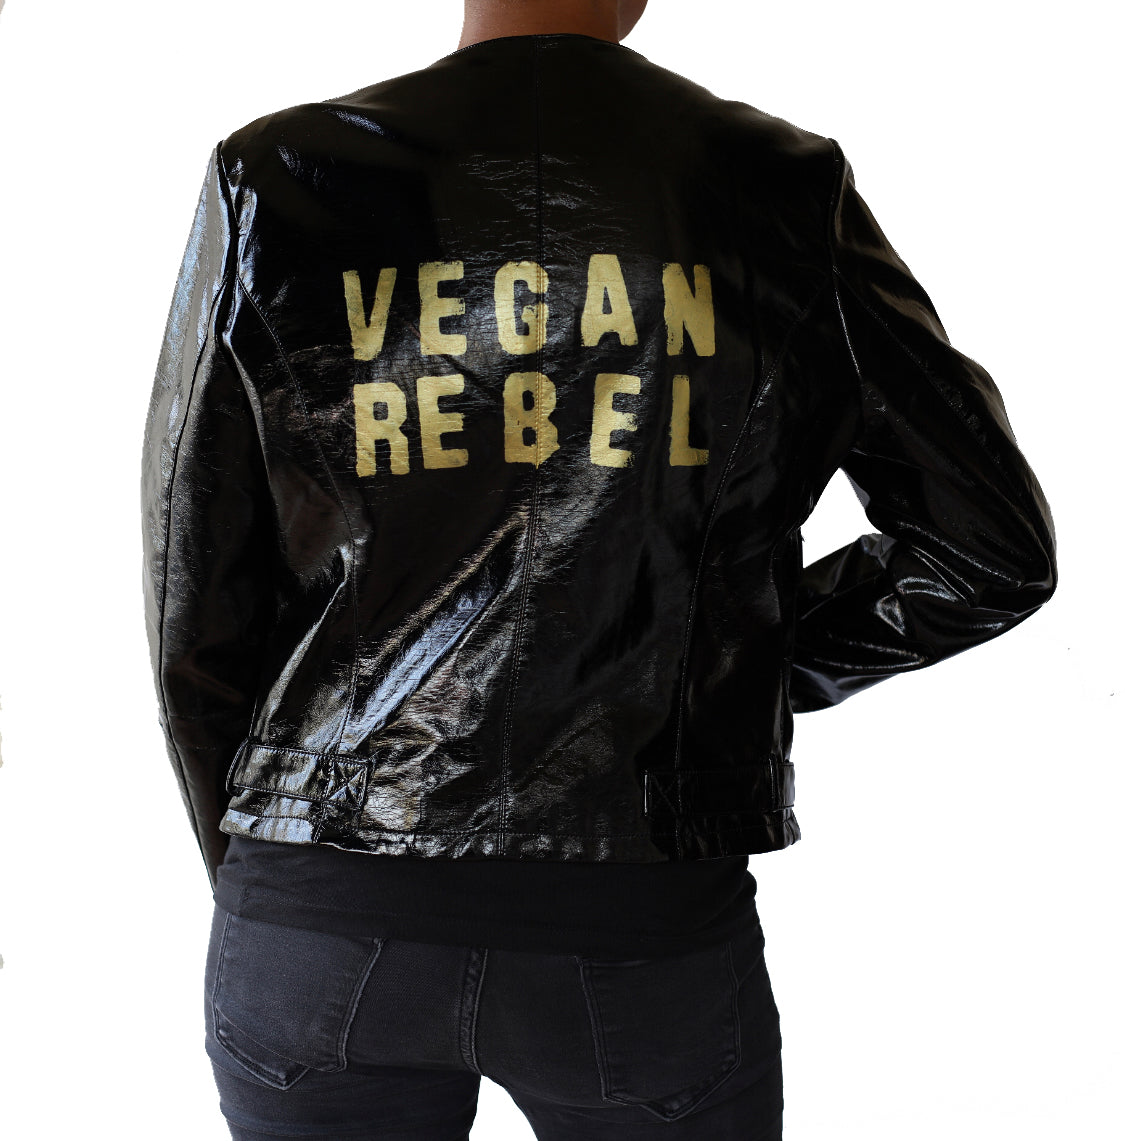 Vegan Rebel Black Shiny Faux Leather Jacket a la Thriller